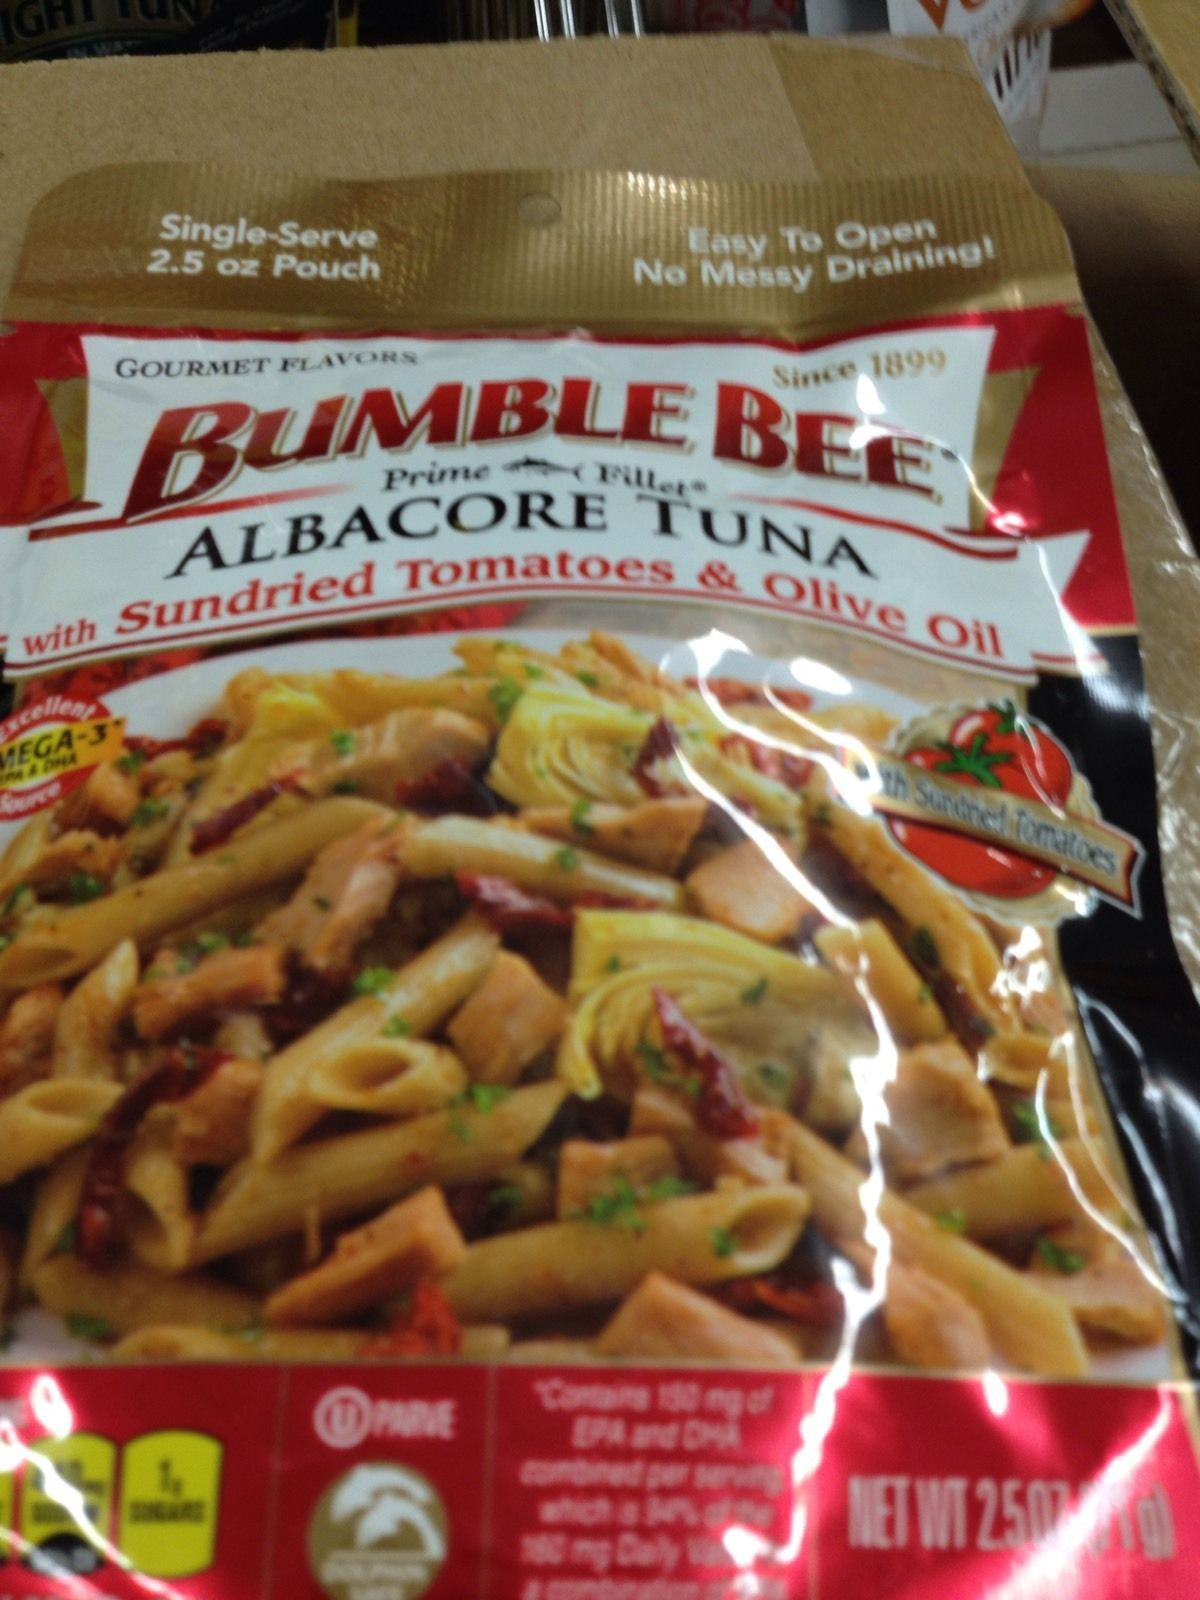 http://m.bonanza.com/listings/Set-of-20-bumble-bee-albacore-tuna-with-sundried-tomato-olive-oil-2-5-oz-each/313396153